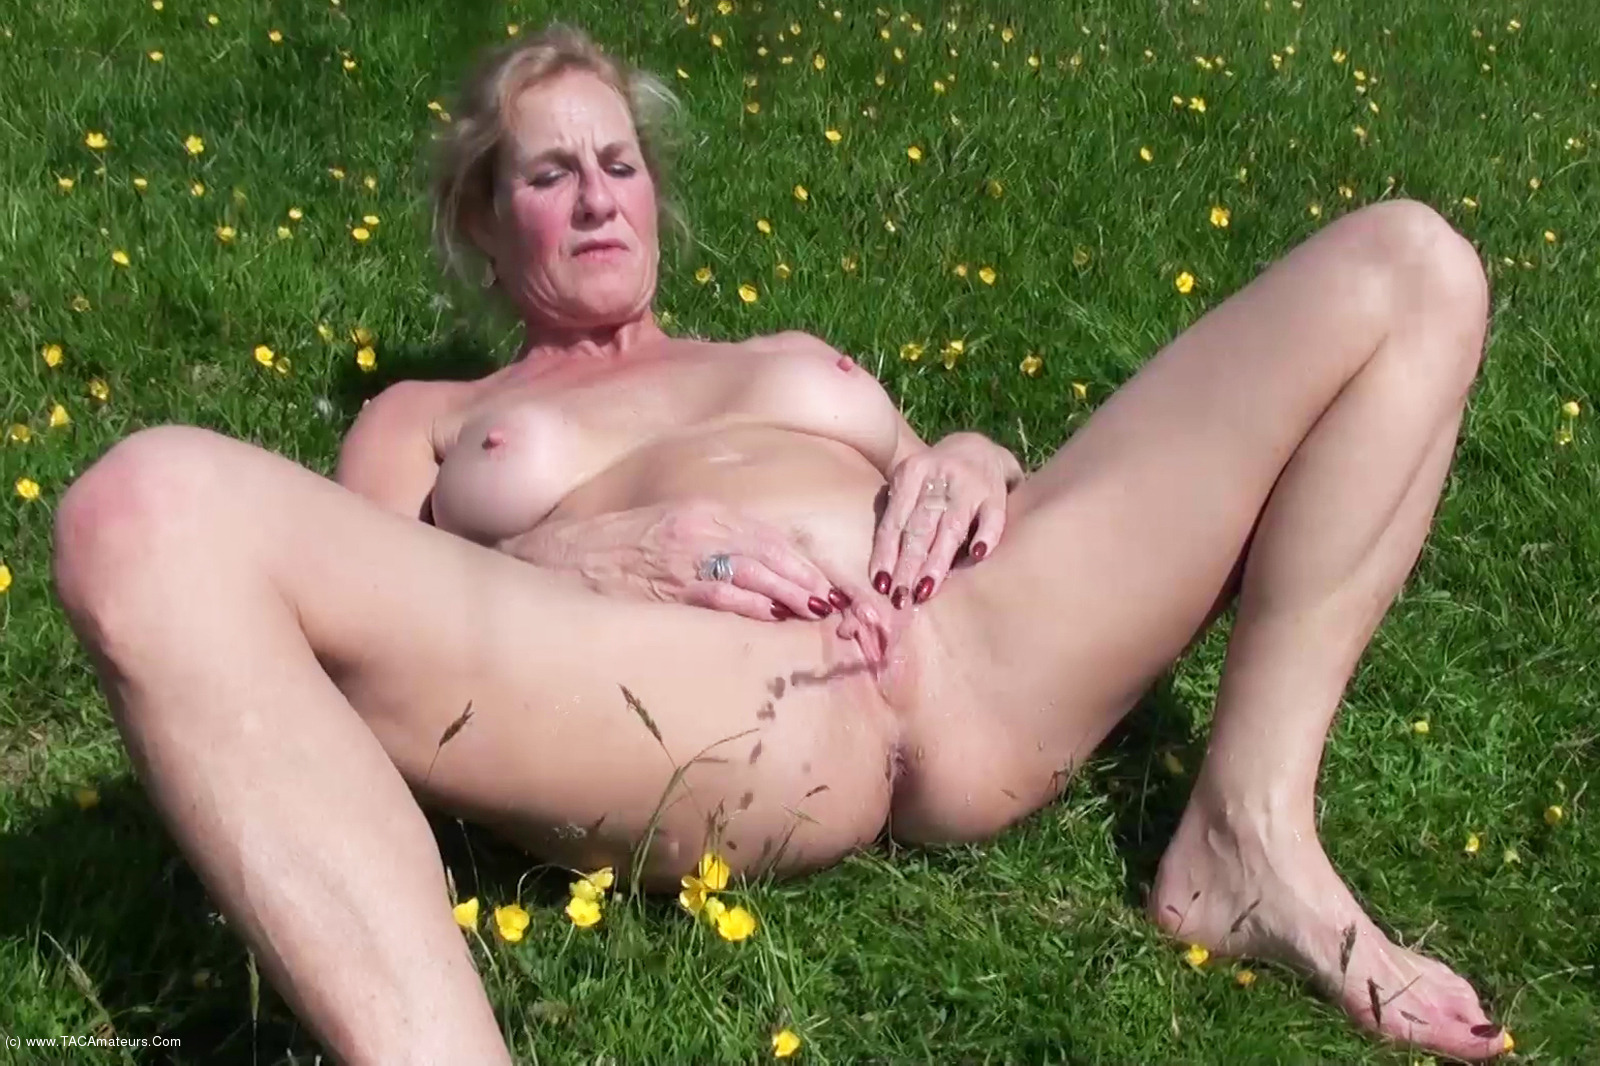 Mature women-long length videos